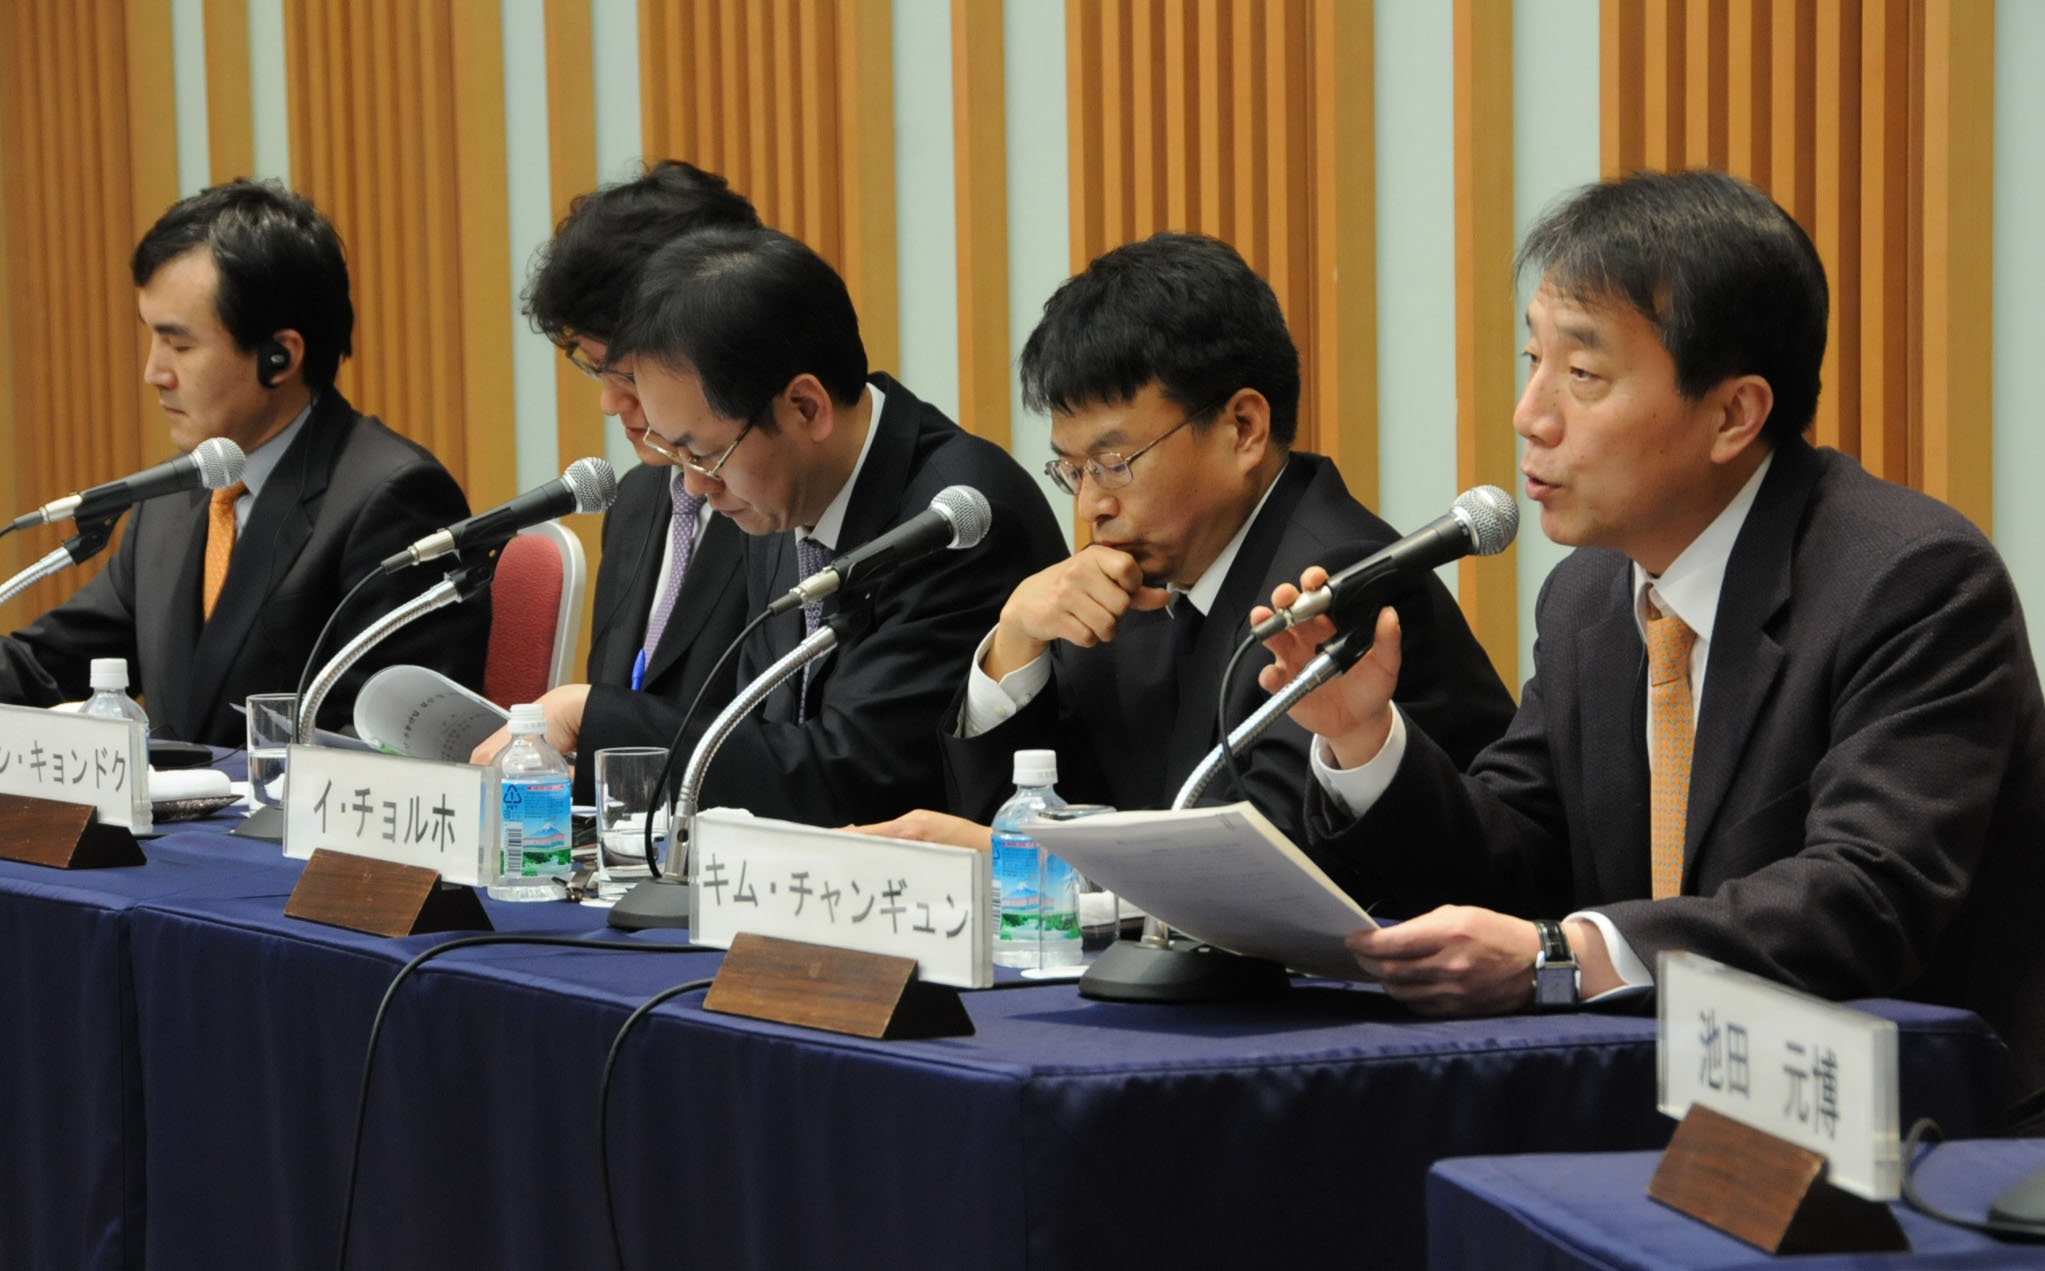 Kim Chang Kyoon (right) from The Chosun Ilbo daily speaks while Jang Gyeong Duk (left) of the Maeil Business Newspaper and Lee Chul Ho from the JoongAng Ilbo listen during a Feb. 10 symposium in Tokyo. | SATOKO KAWASAKI